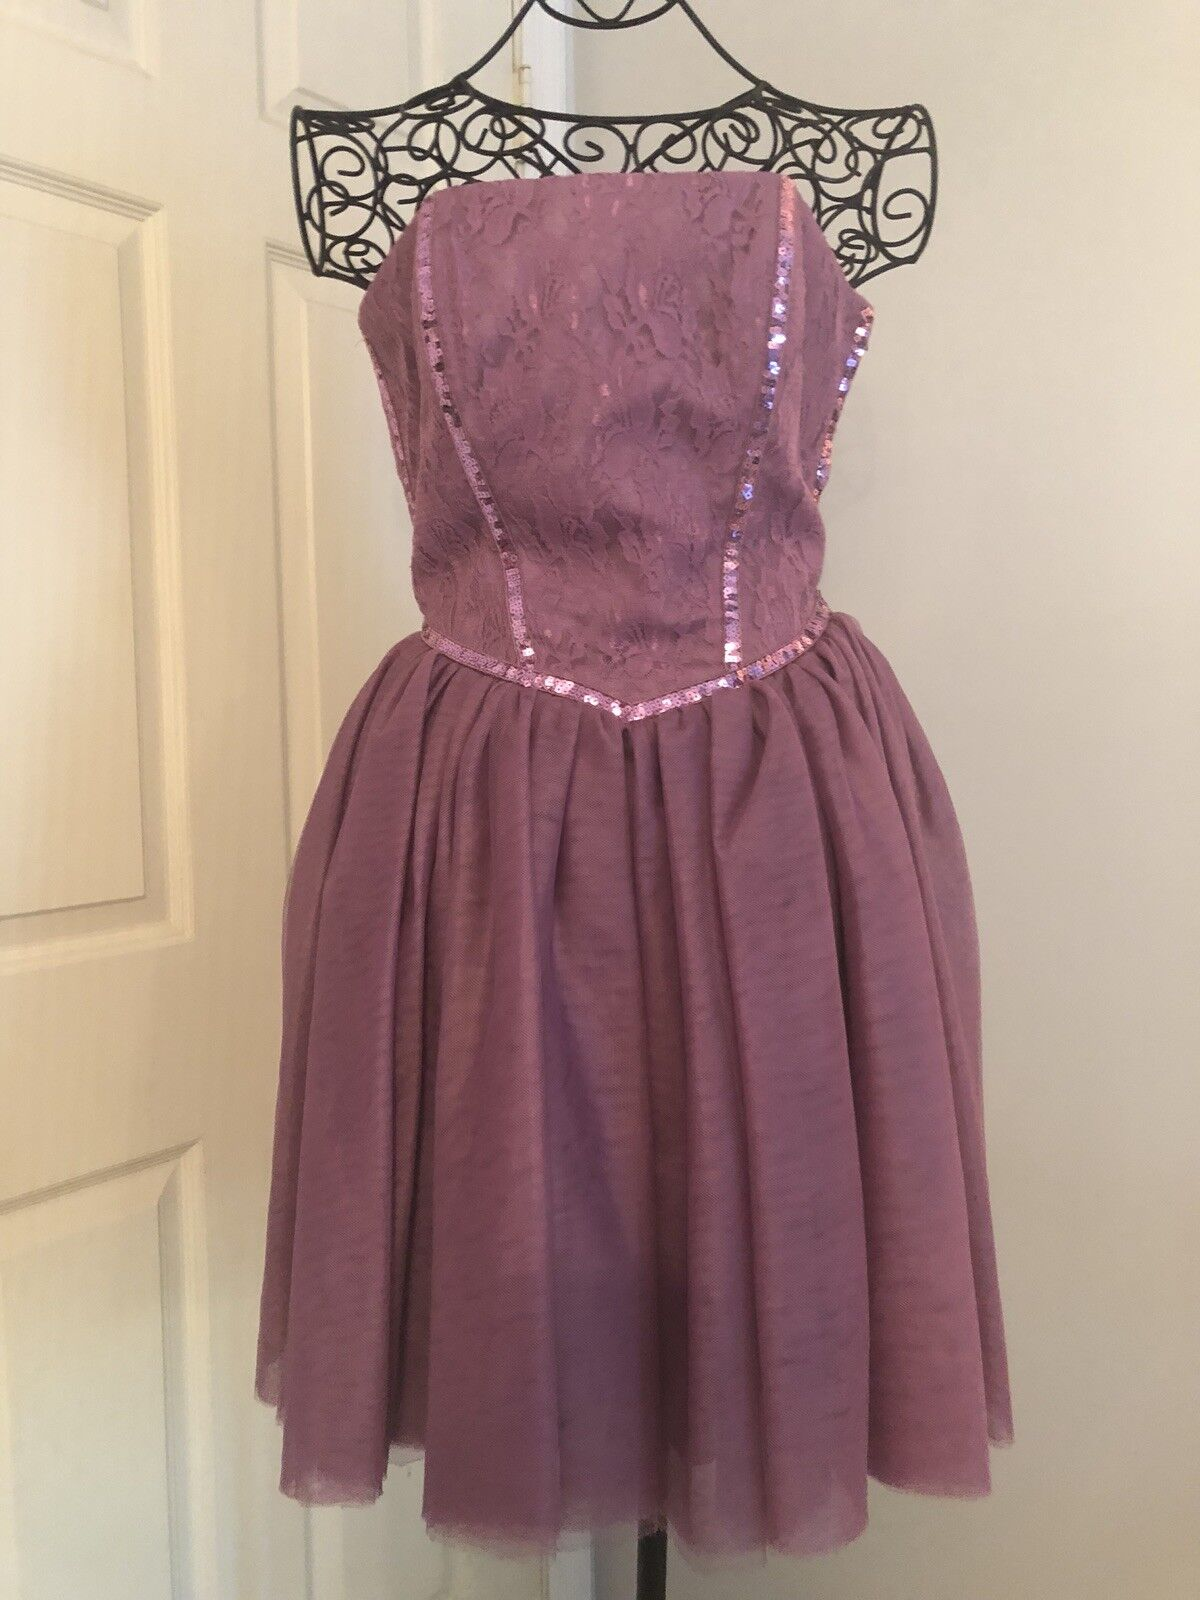 Pre-Owned BETSEY JOHNSON purplec Lace & Sequin Dress Size 6